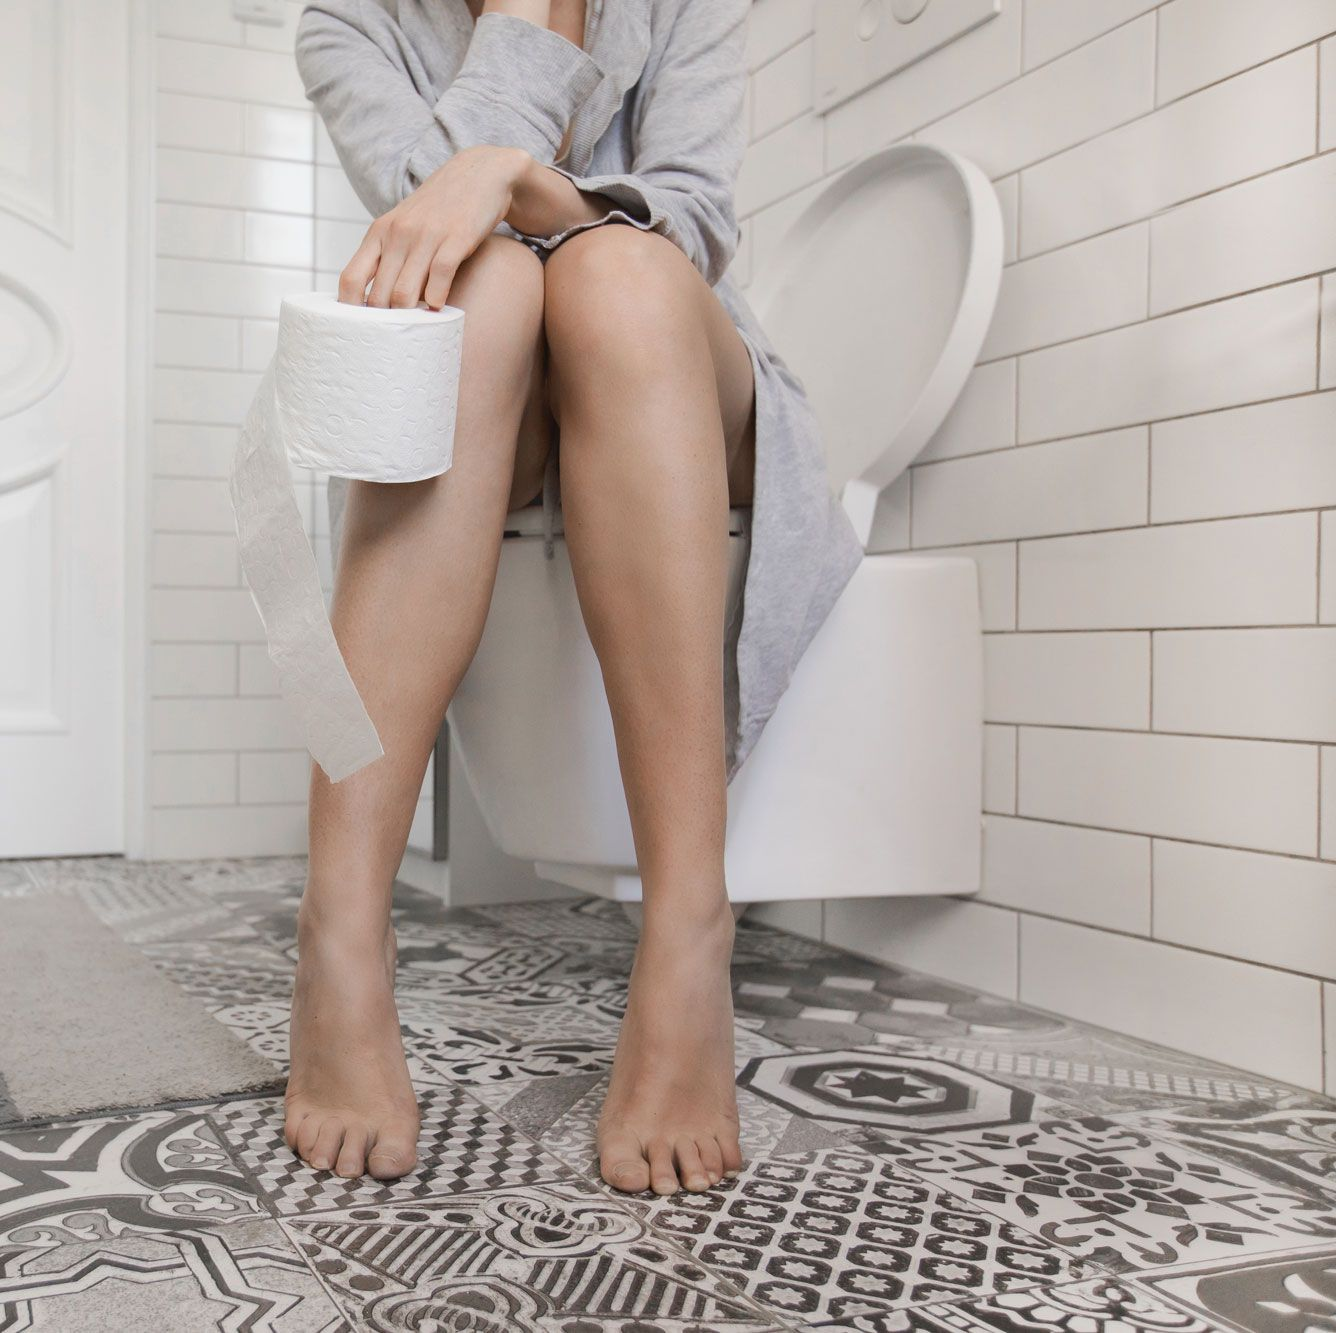 Everything You've Ever Wanted to Know About Poop (But Didn't Want to Ask)